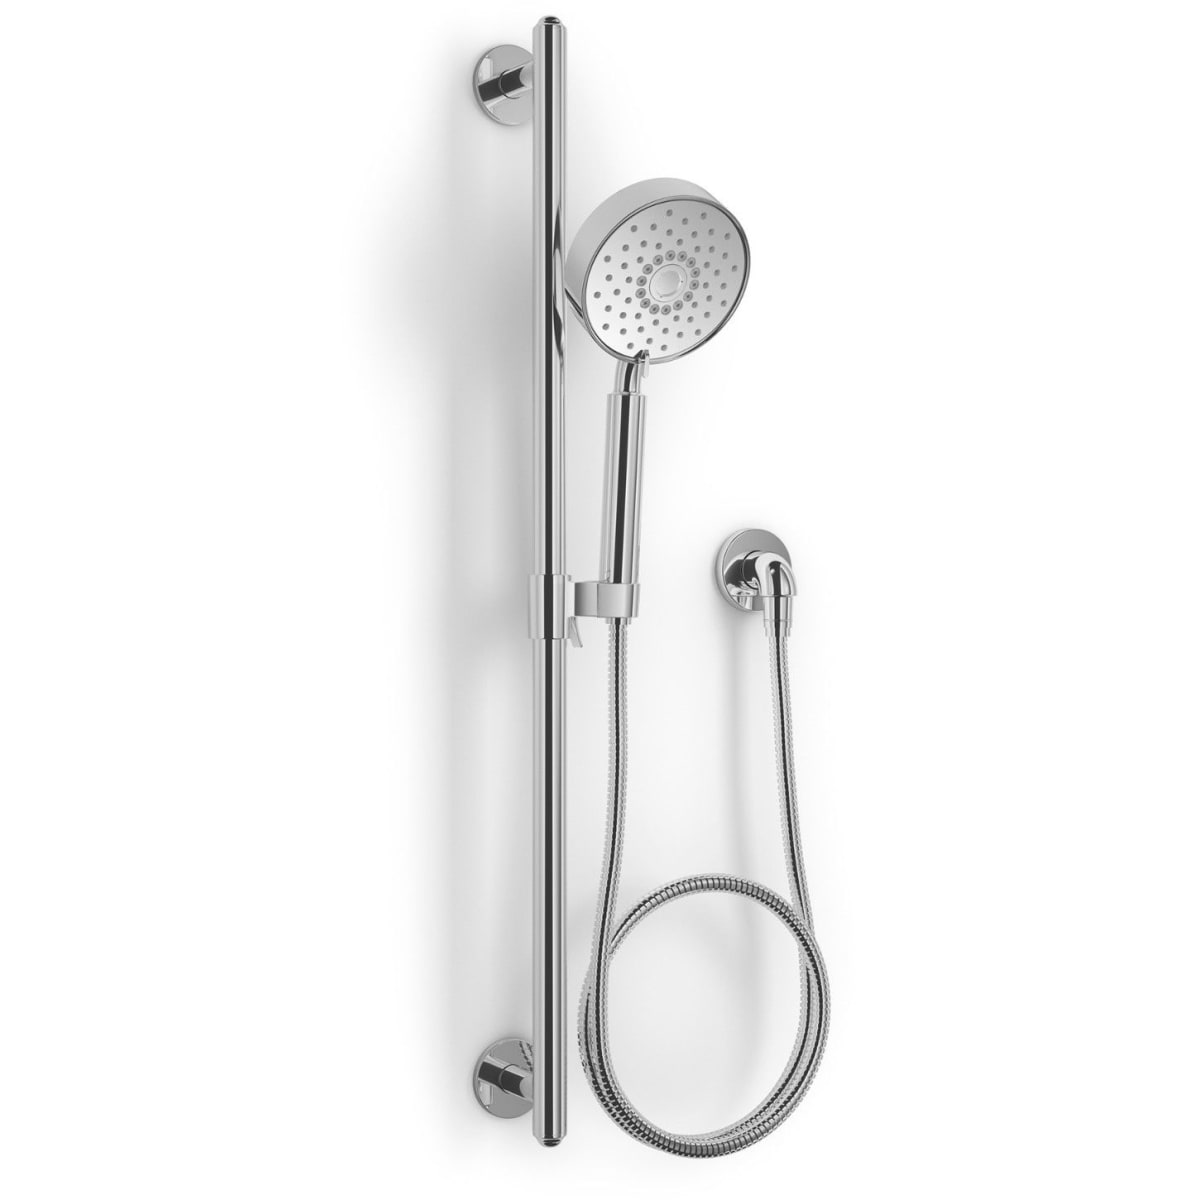 Kohler Purist Handshower Kit 2 5 Sn Vibrant Polished Nickel